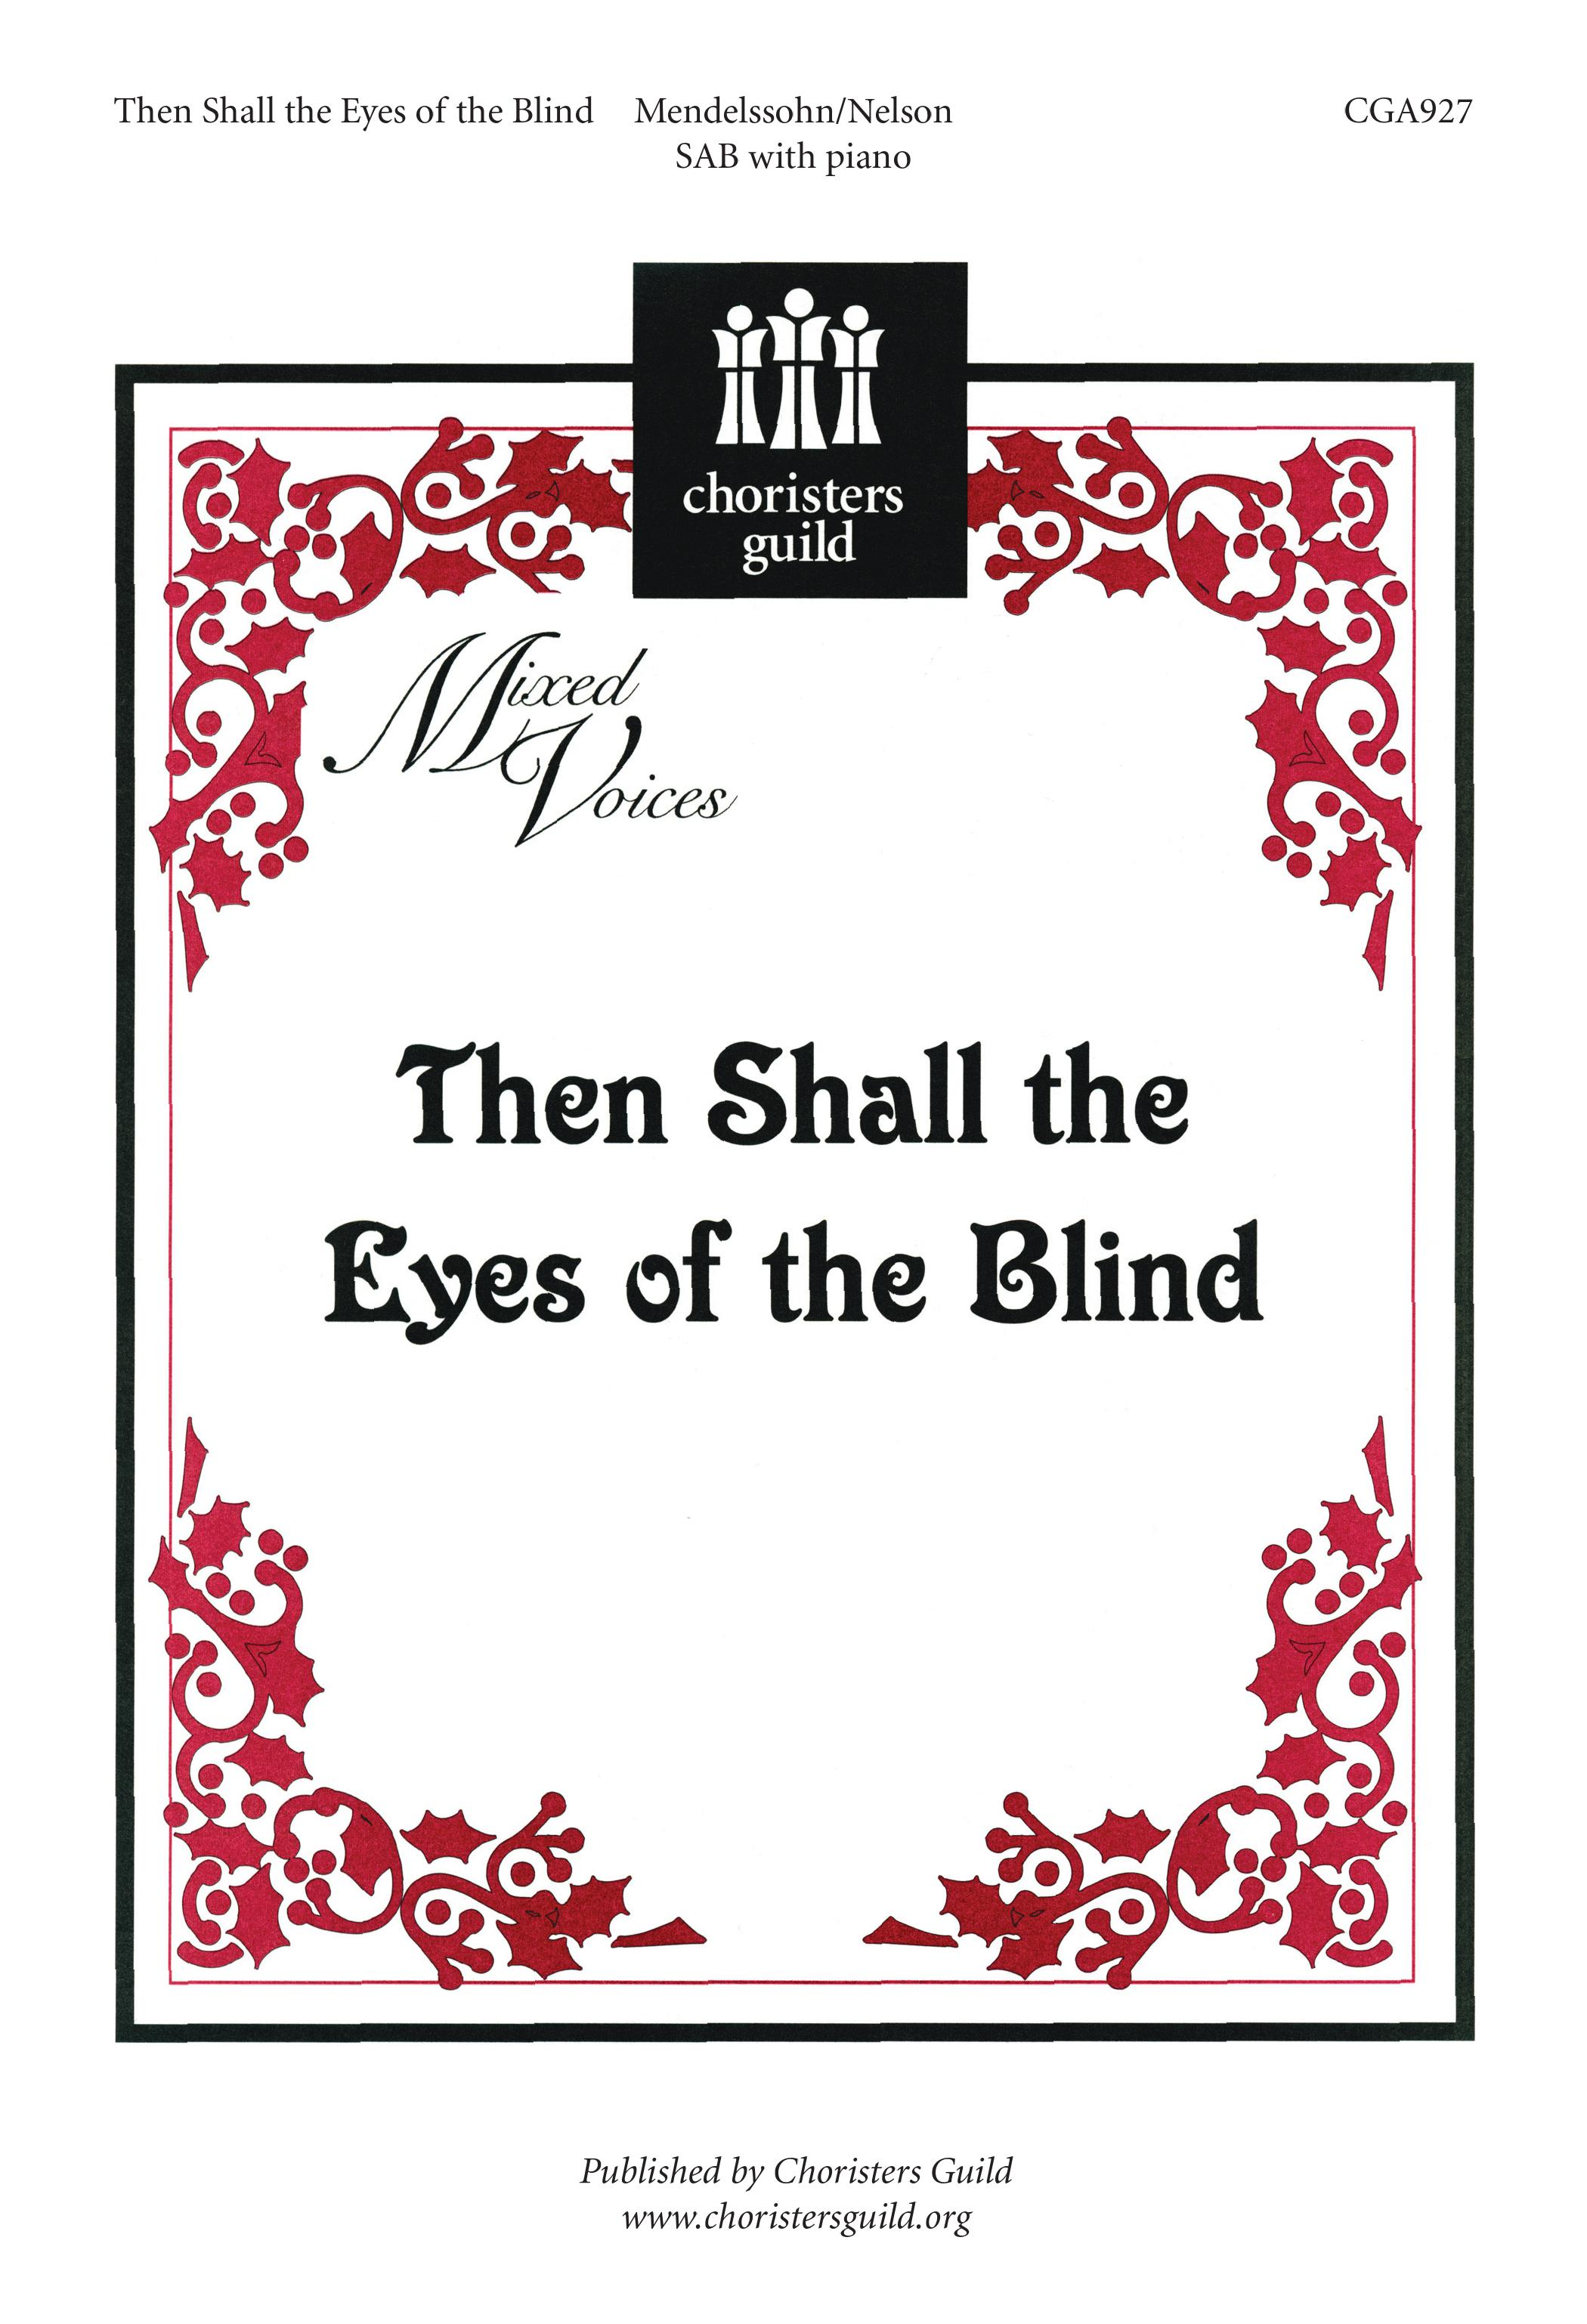 Then Shall the Eyes of the Blind